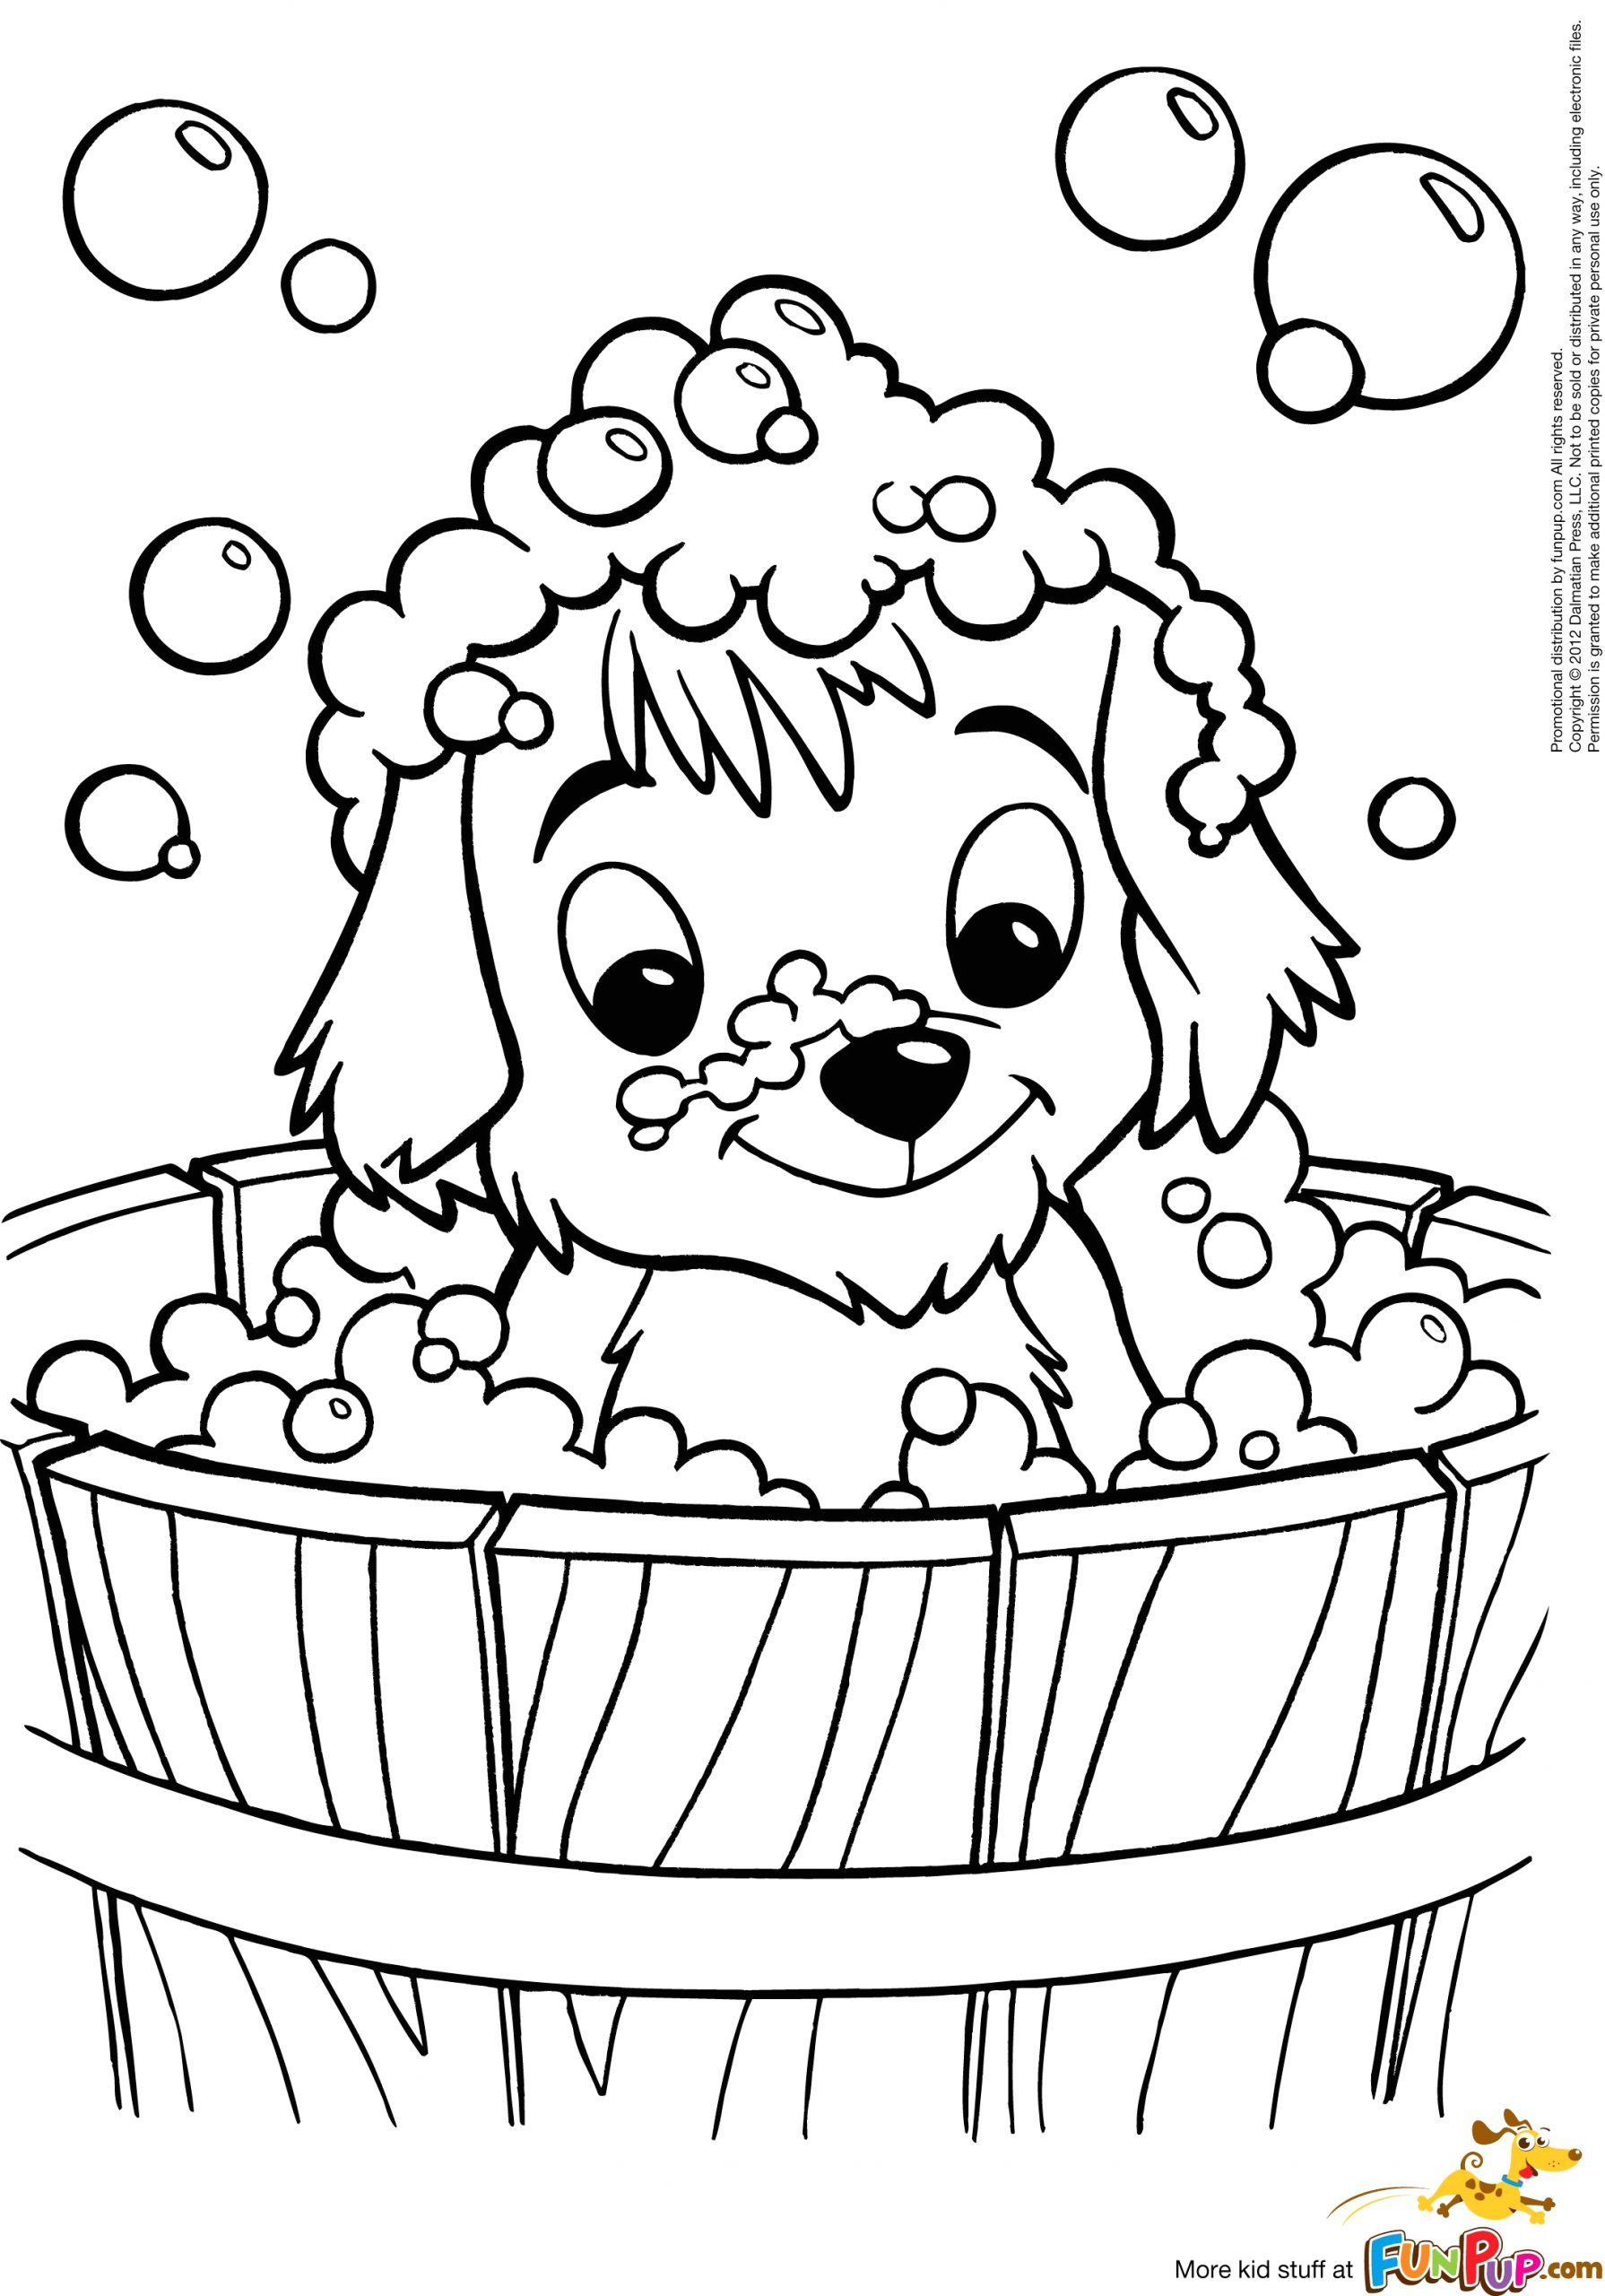 Coloring Pages Of Cute Dogs and Puppies Puppy Love Coloring Pages at Getcolorings